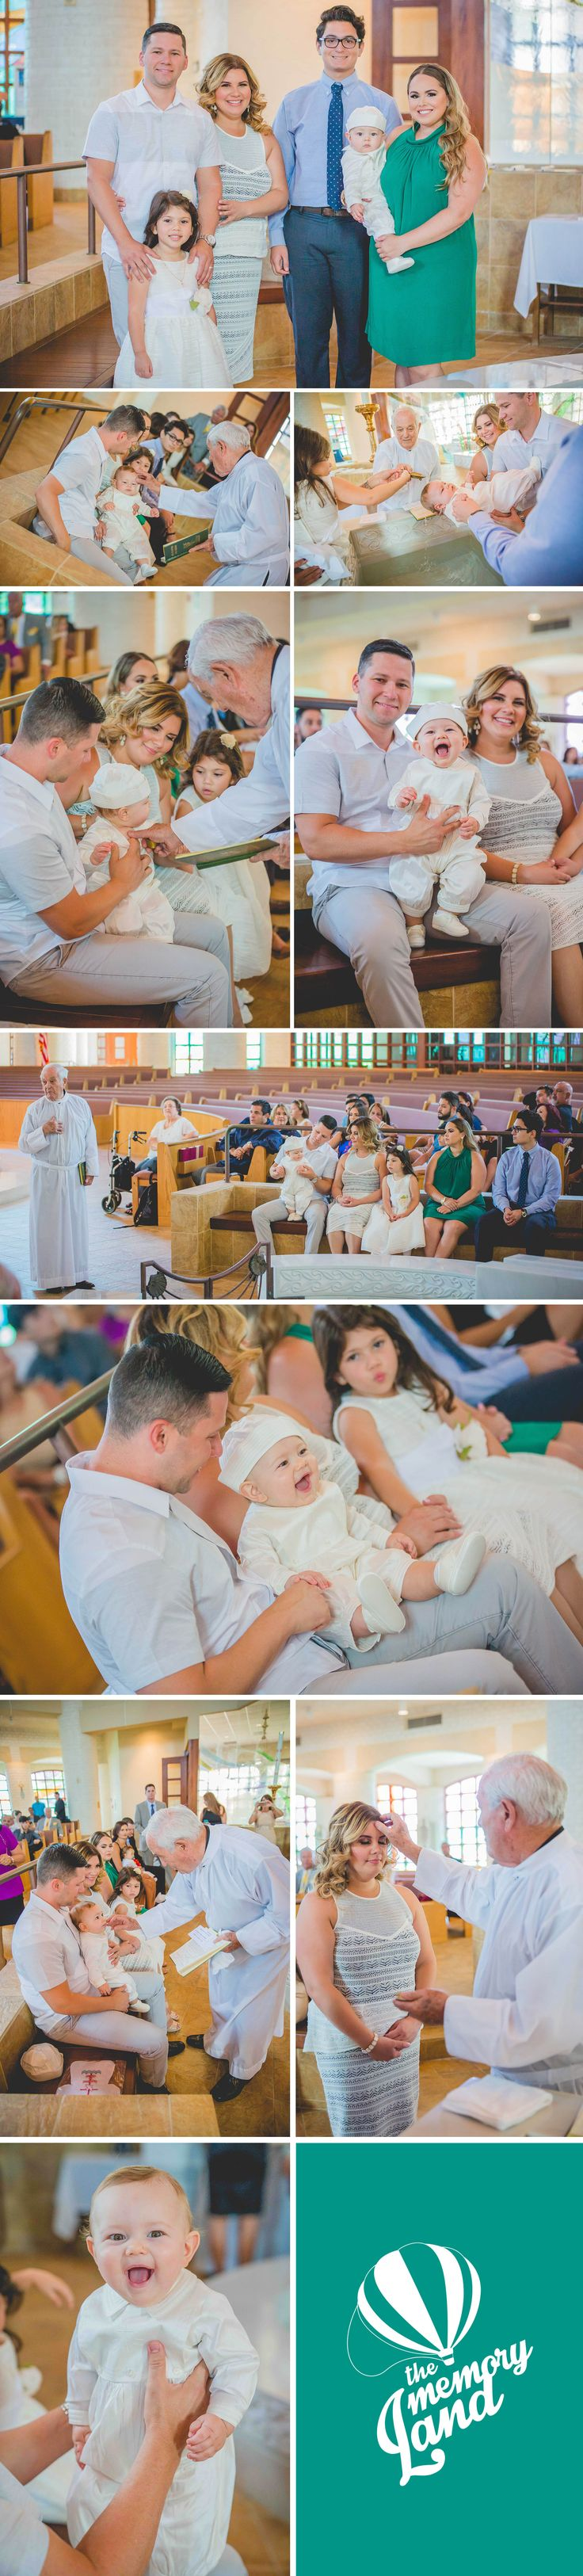 Bendiciones. Baby. Love. Family. Best Picture. Padrinos. Padres. We Love Our Job. Celebration. Baptisms Photography Check out more of our work :) thememoryland.com/